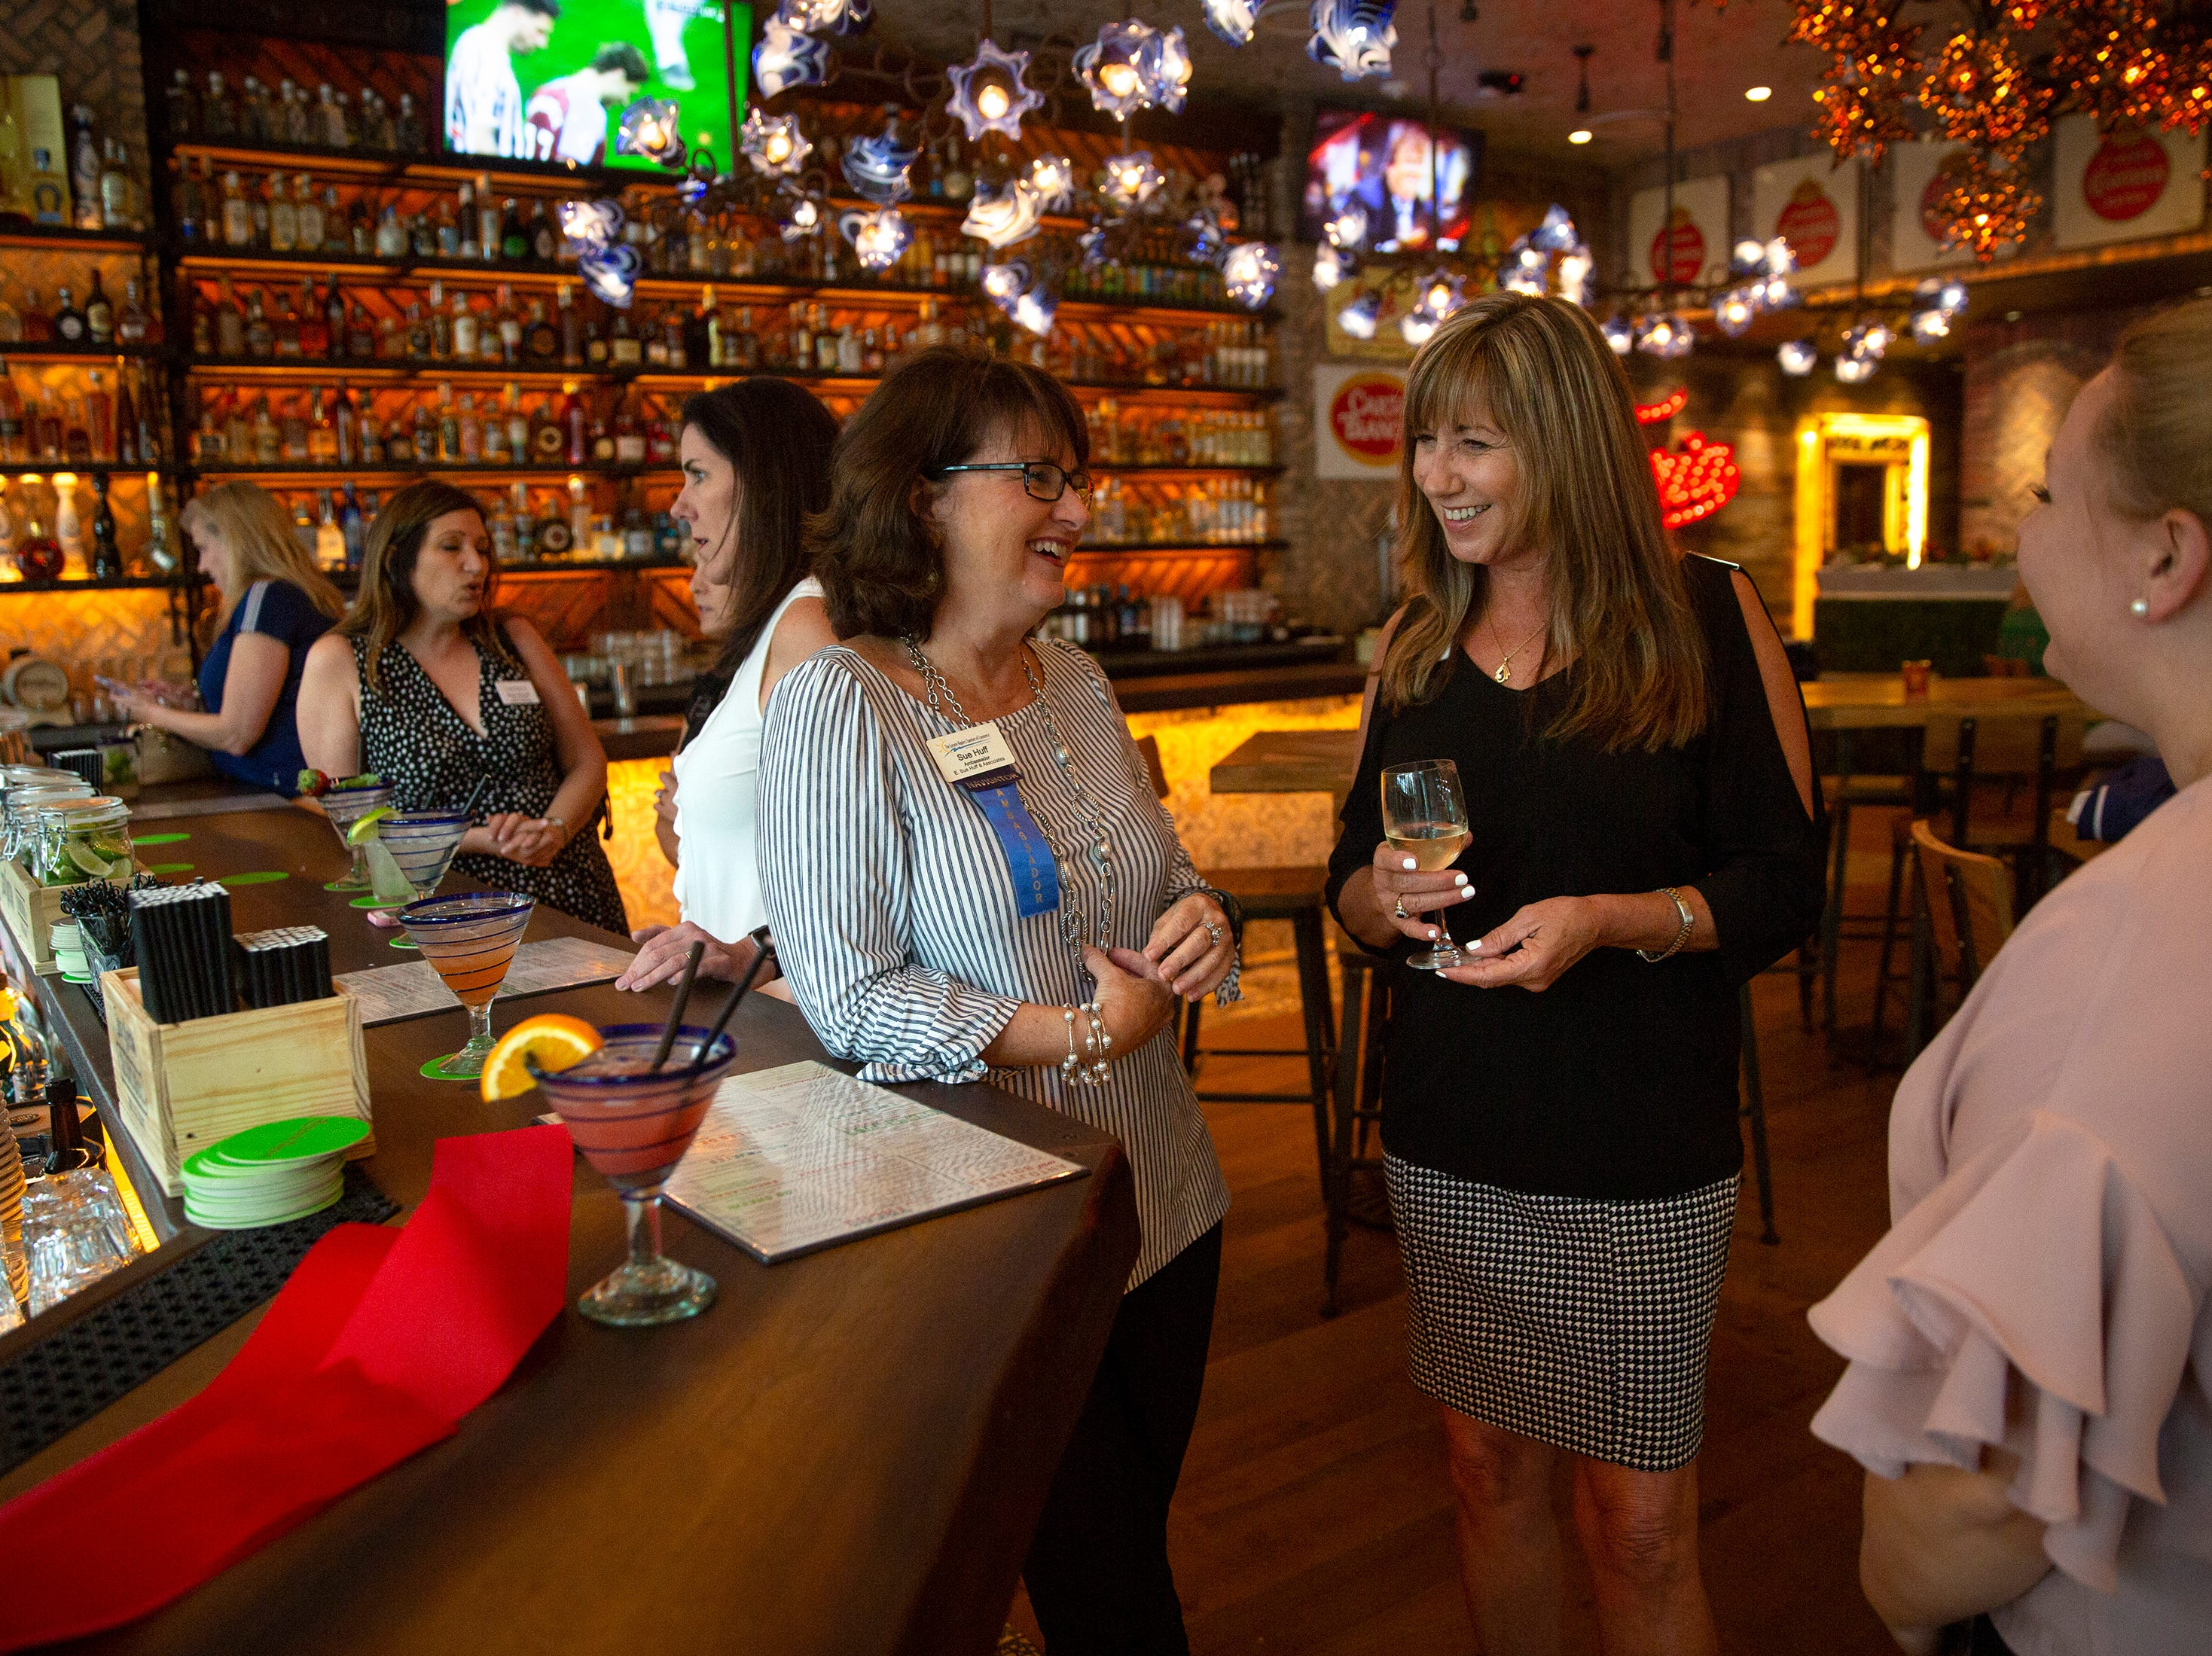 Sue Huff, center, Lisa Winters and Emily Sumpmann, right, enjoy a conversation at a preview of Rocco's Tacos & Tequila Bar on Tuesday, Feb. 26, 2019, at Mercato in North Naples. The long-waited restaurant officially opens on Wednesday.